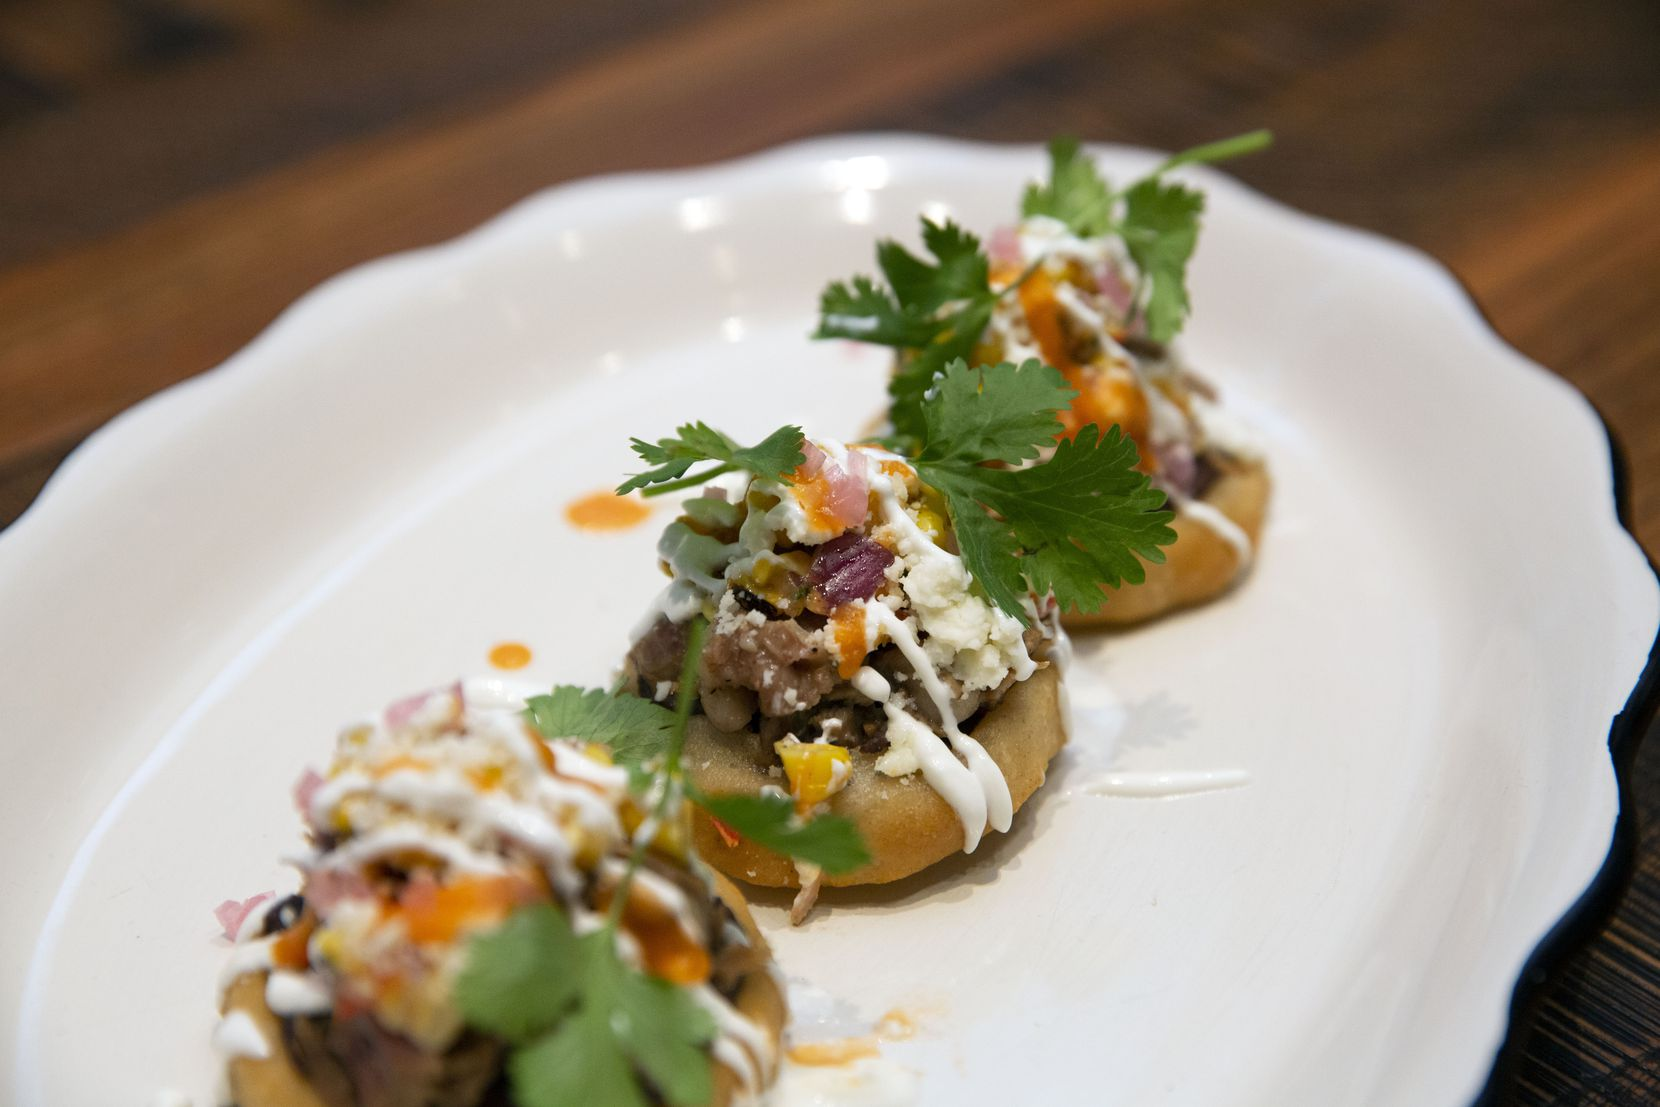 Sopes are given a Texas spin with a filling of smoked brisket, black beans, lime crema, charred corn relish, queso fresco and habanero salsa,